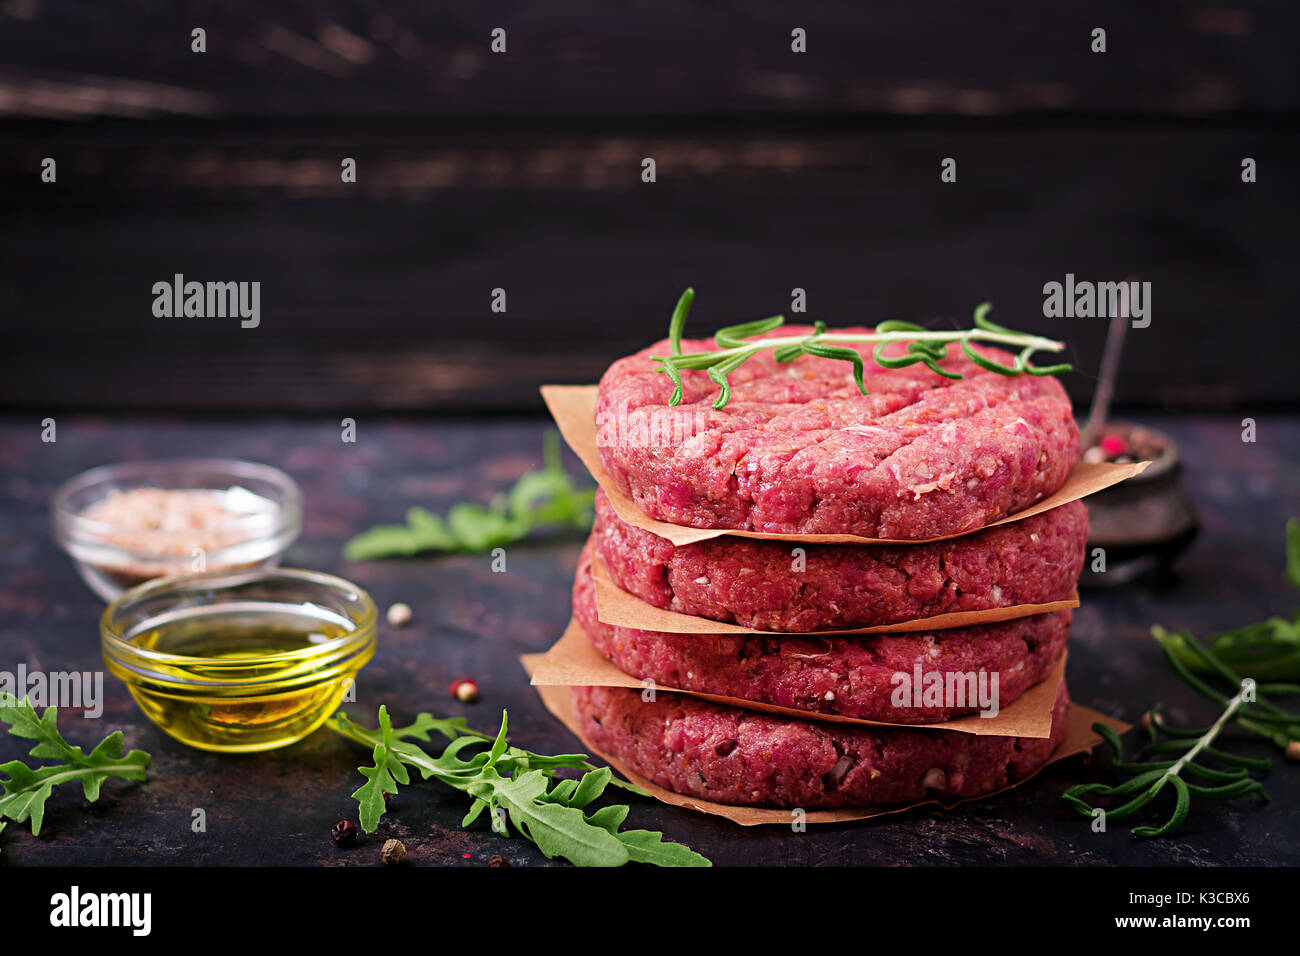 Fresh raw homemade minced beef steak burger with spices on black background - Stock Image